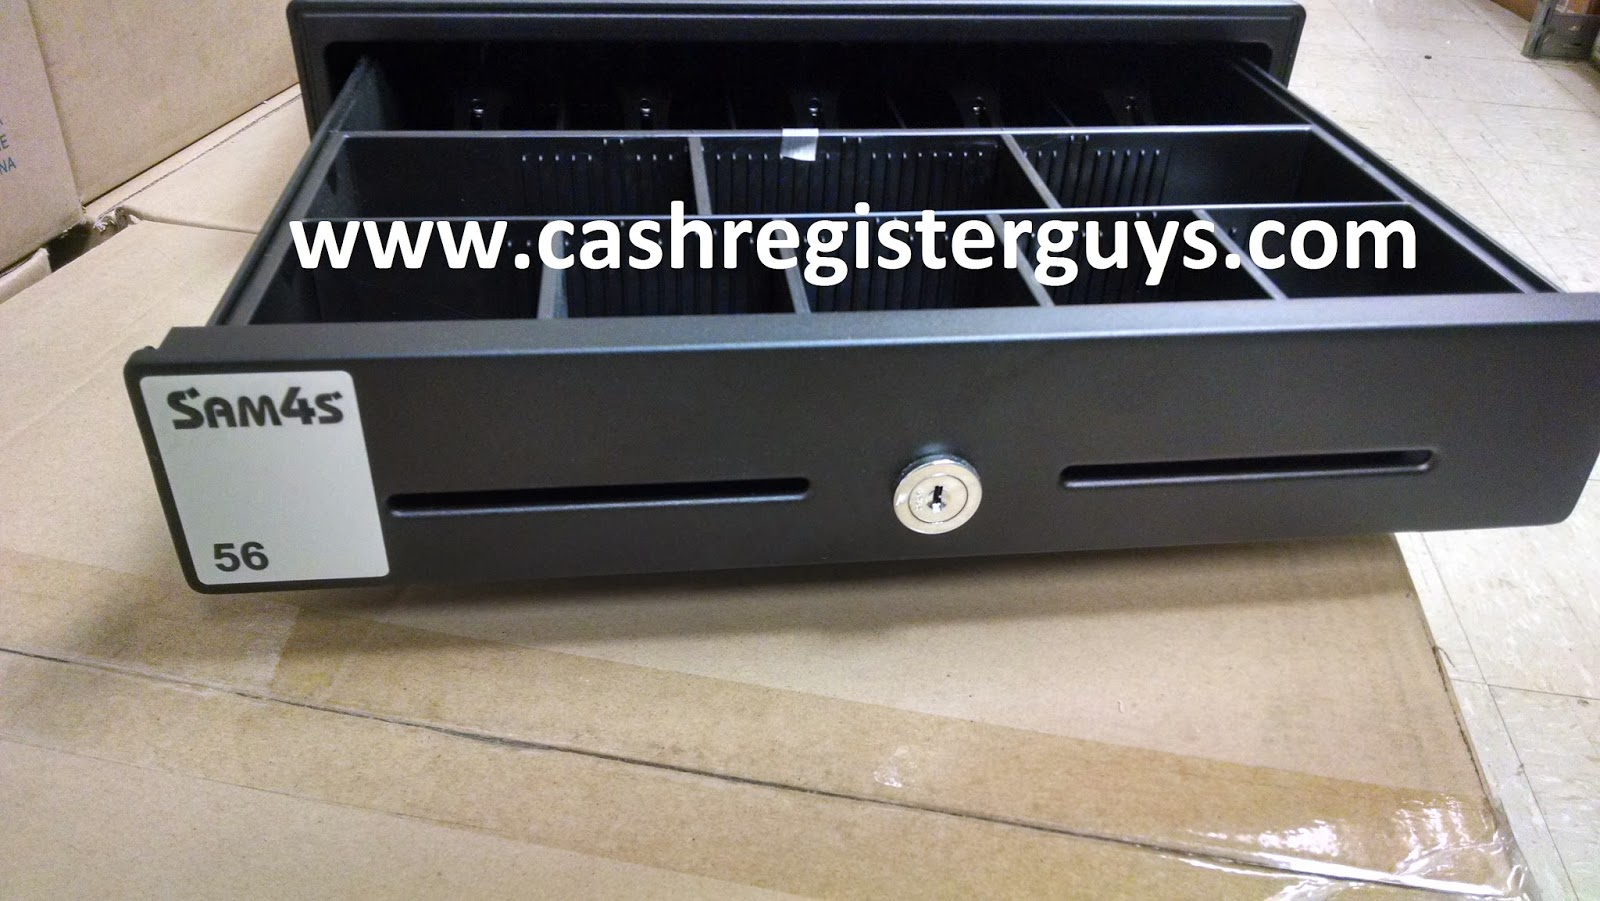 SAM4s SPS-520FT cash drawer